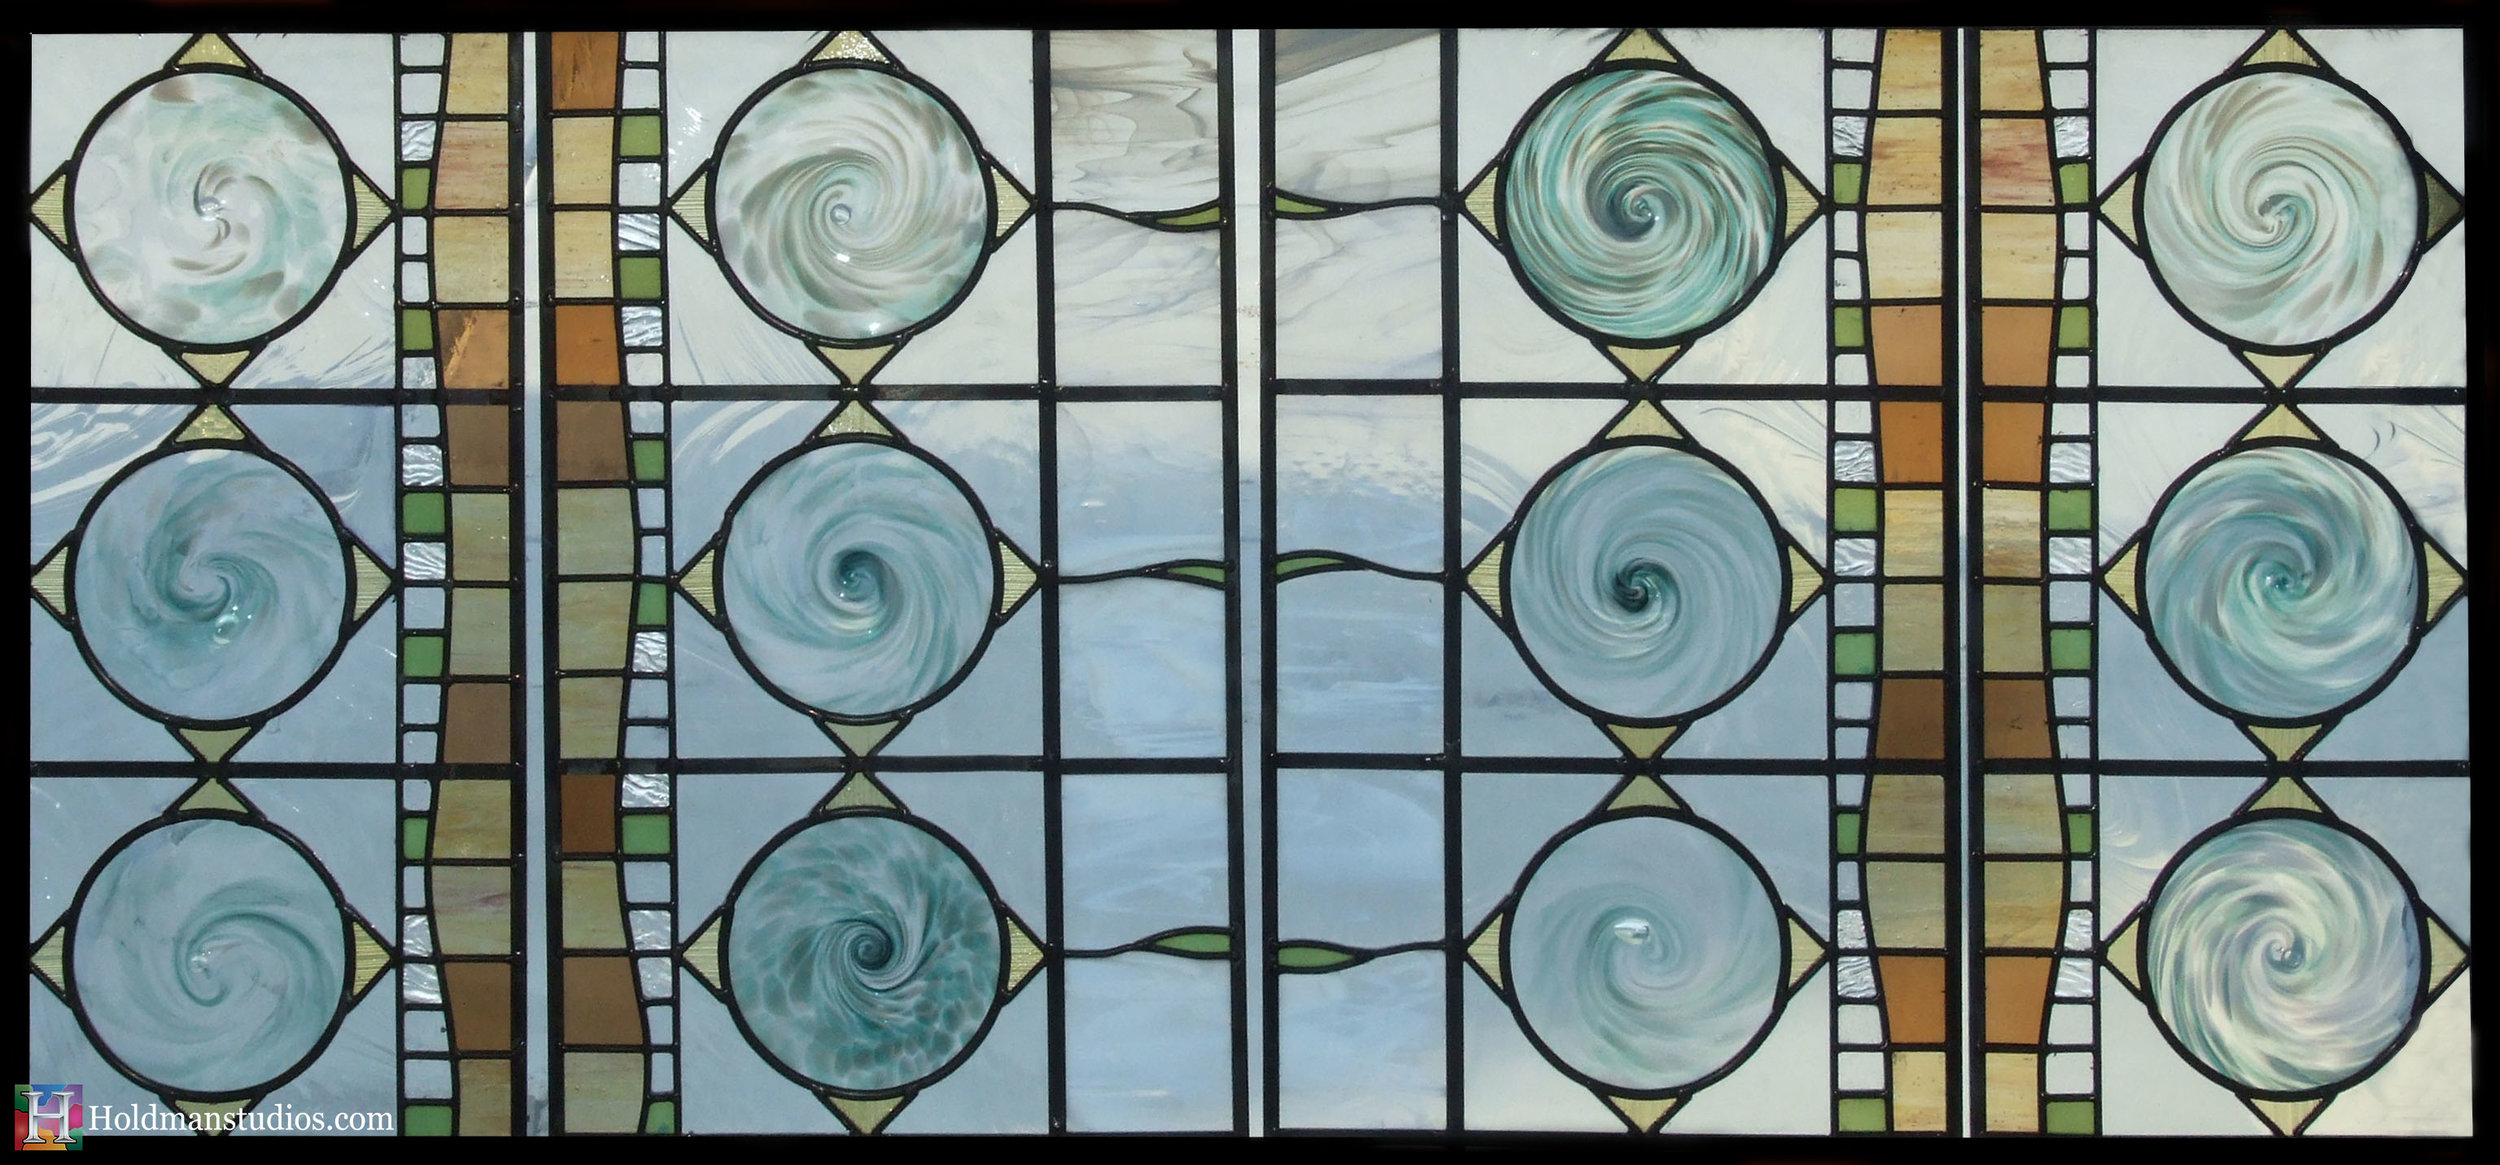 Holdman-Studios-Stained-Hand-Blown-Glass-Window-Circles-Triangles-Squares-Rectangles.jpg